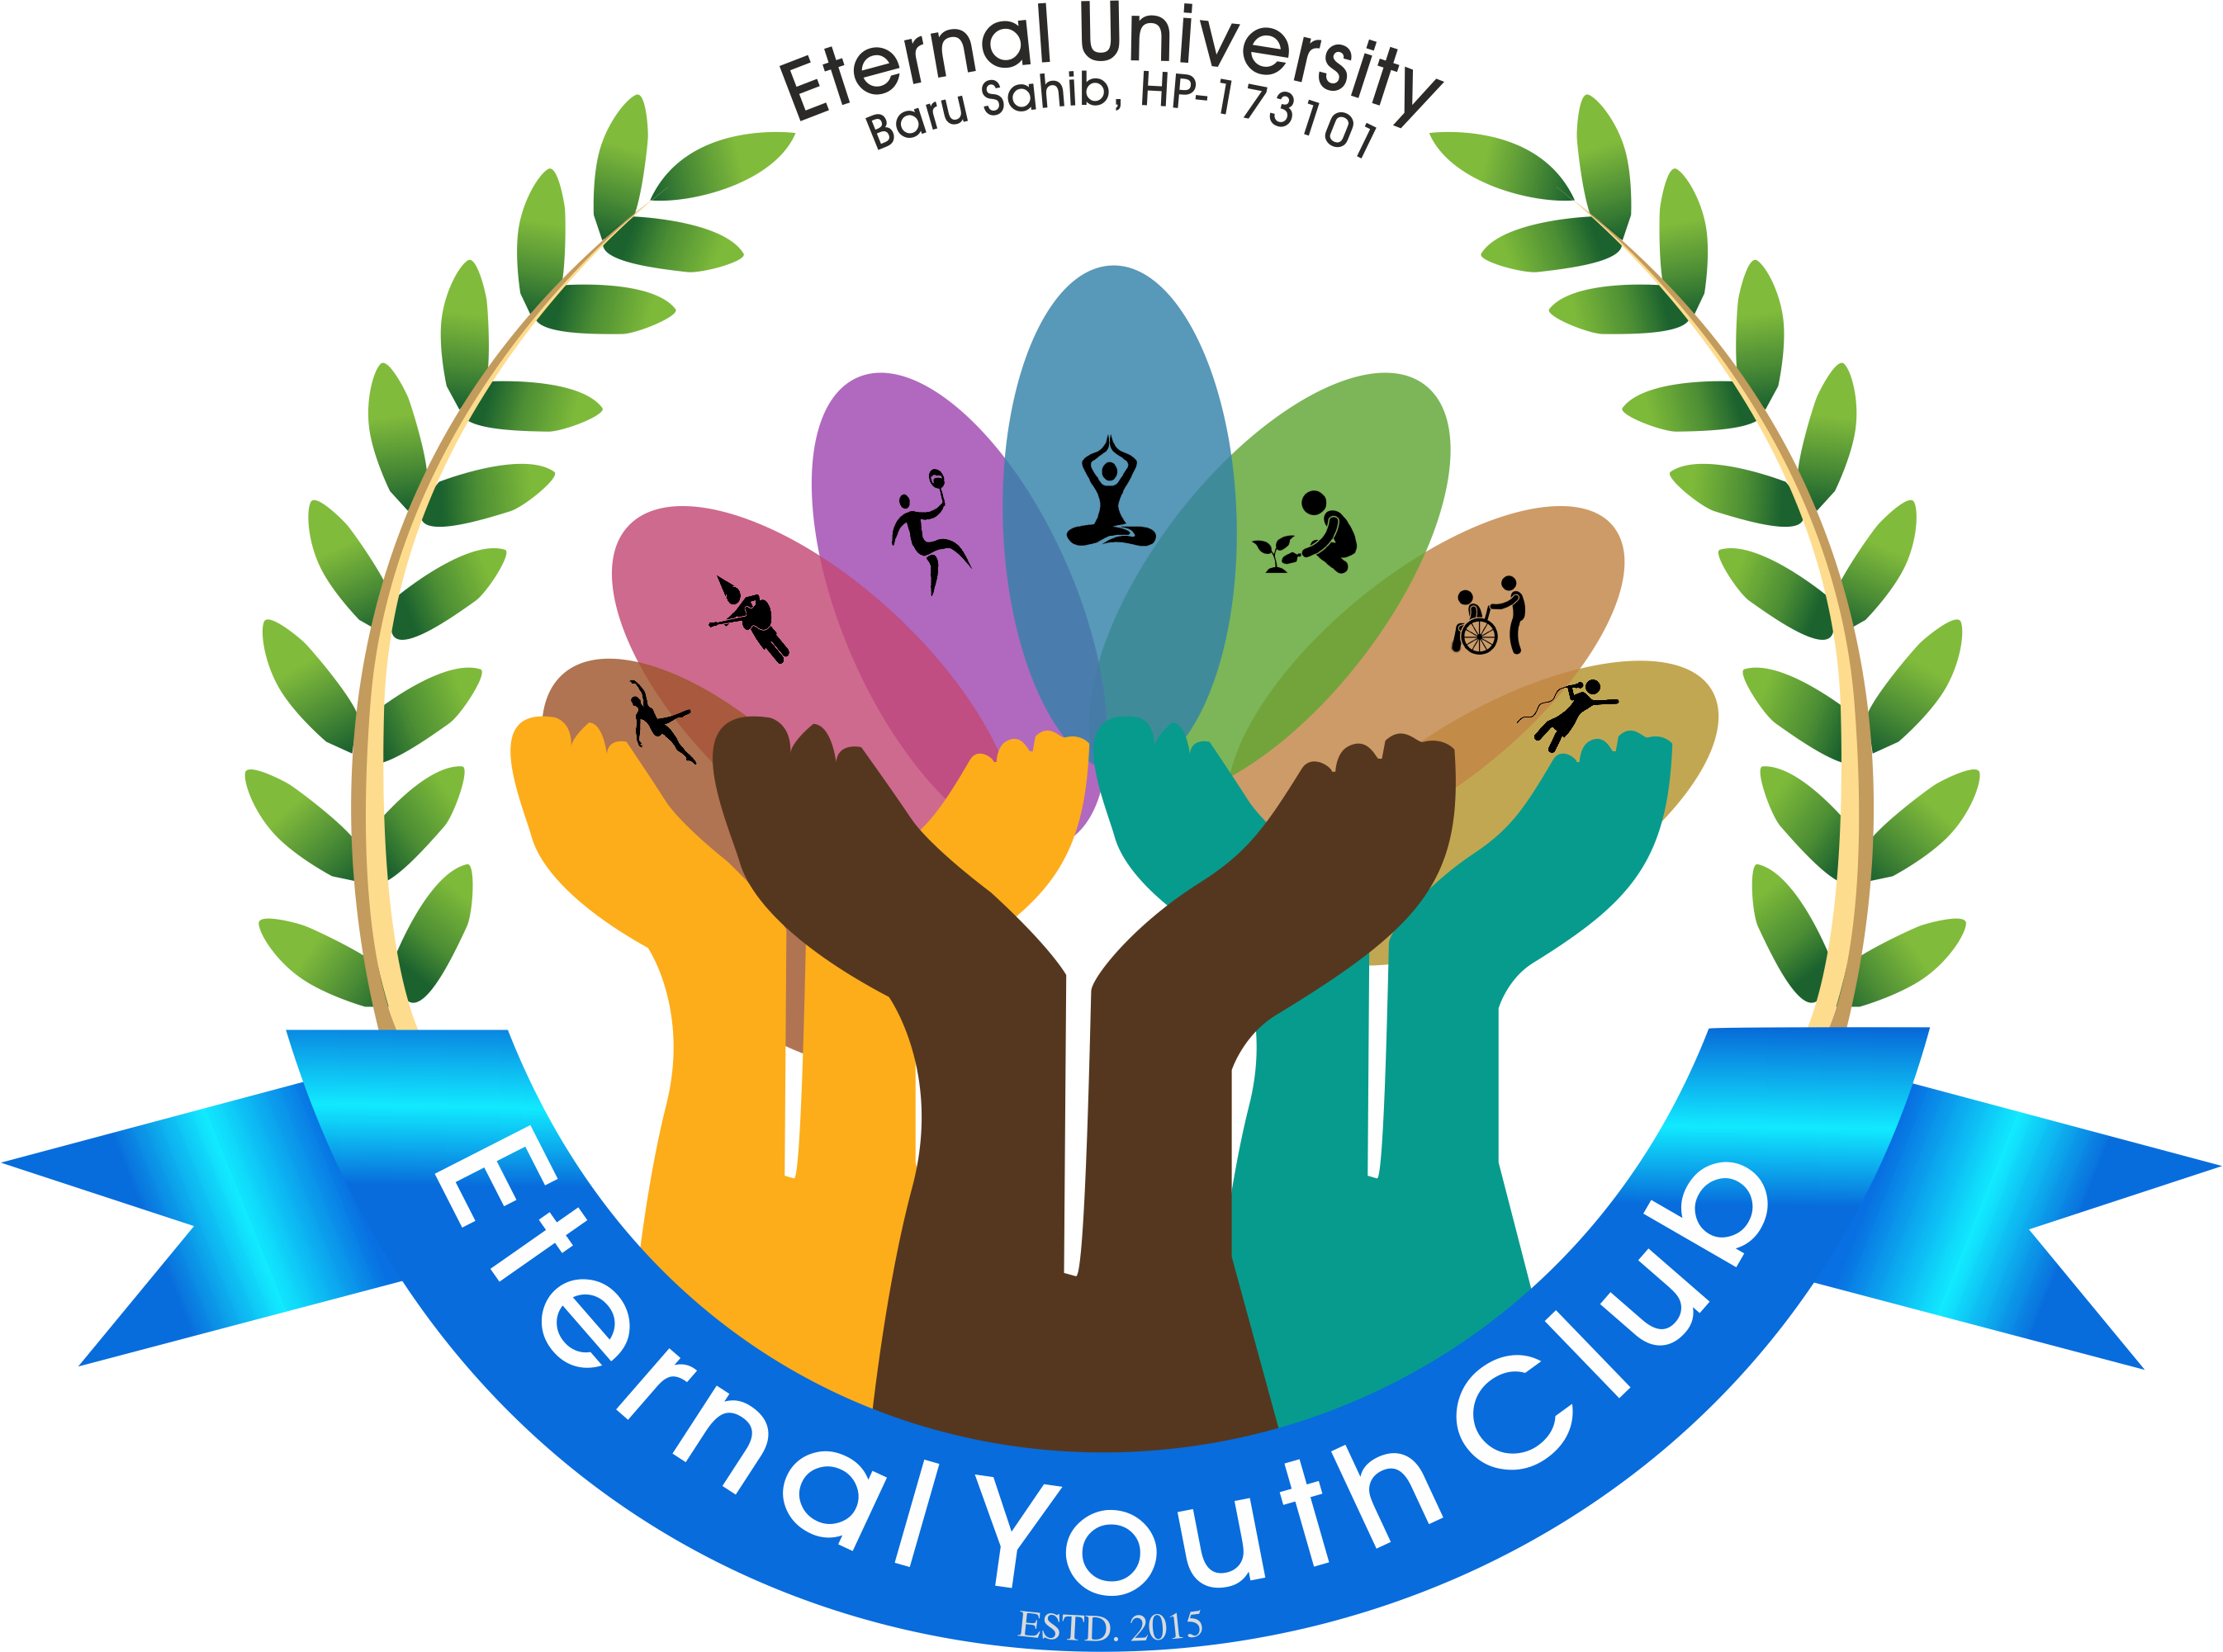 clipart black and white download Youth clipart youth center. Club centre free on